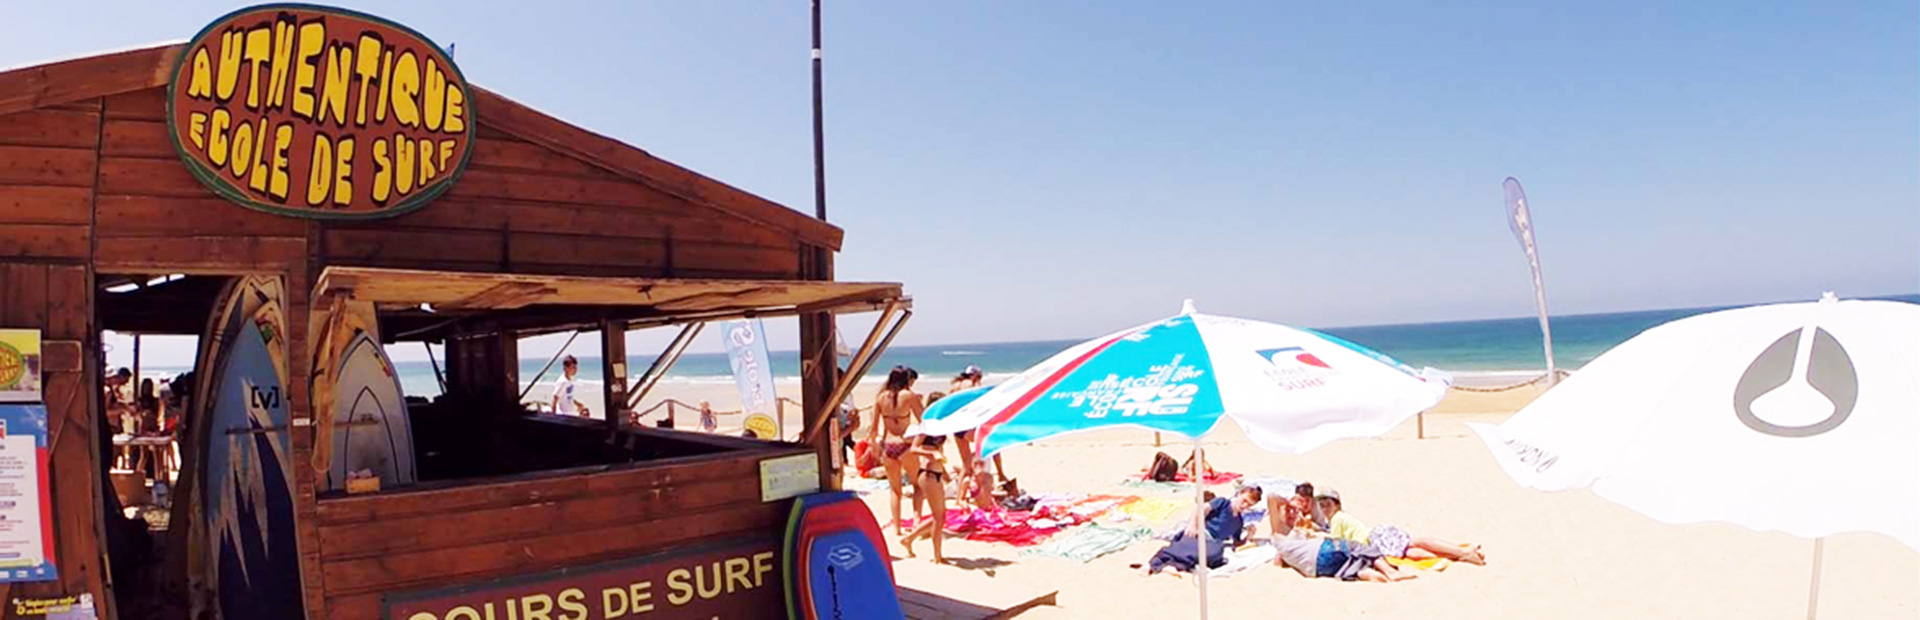 surfer school capbreton